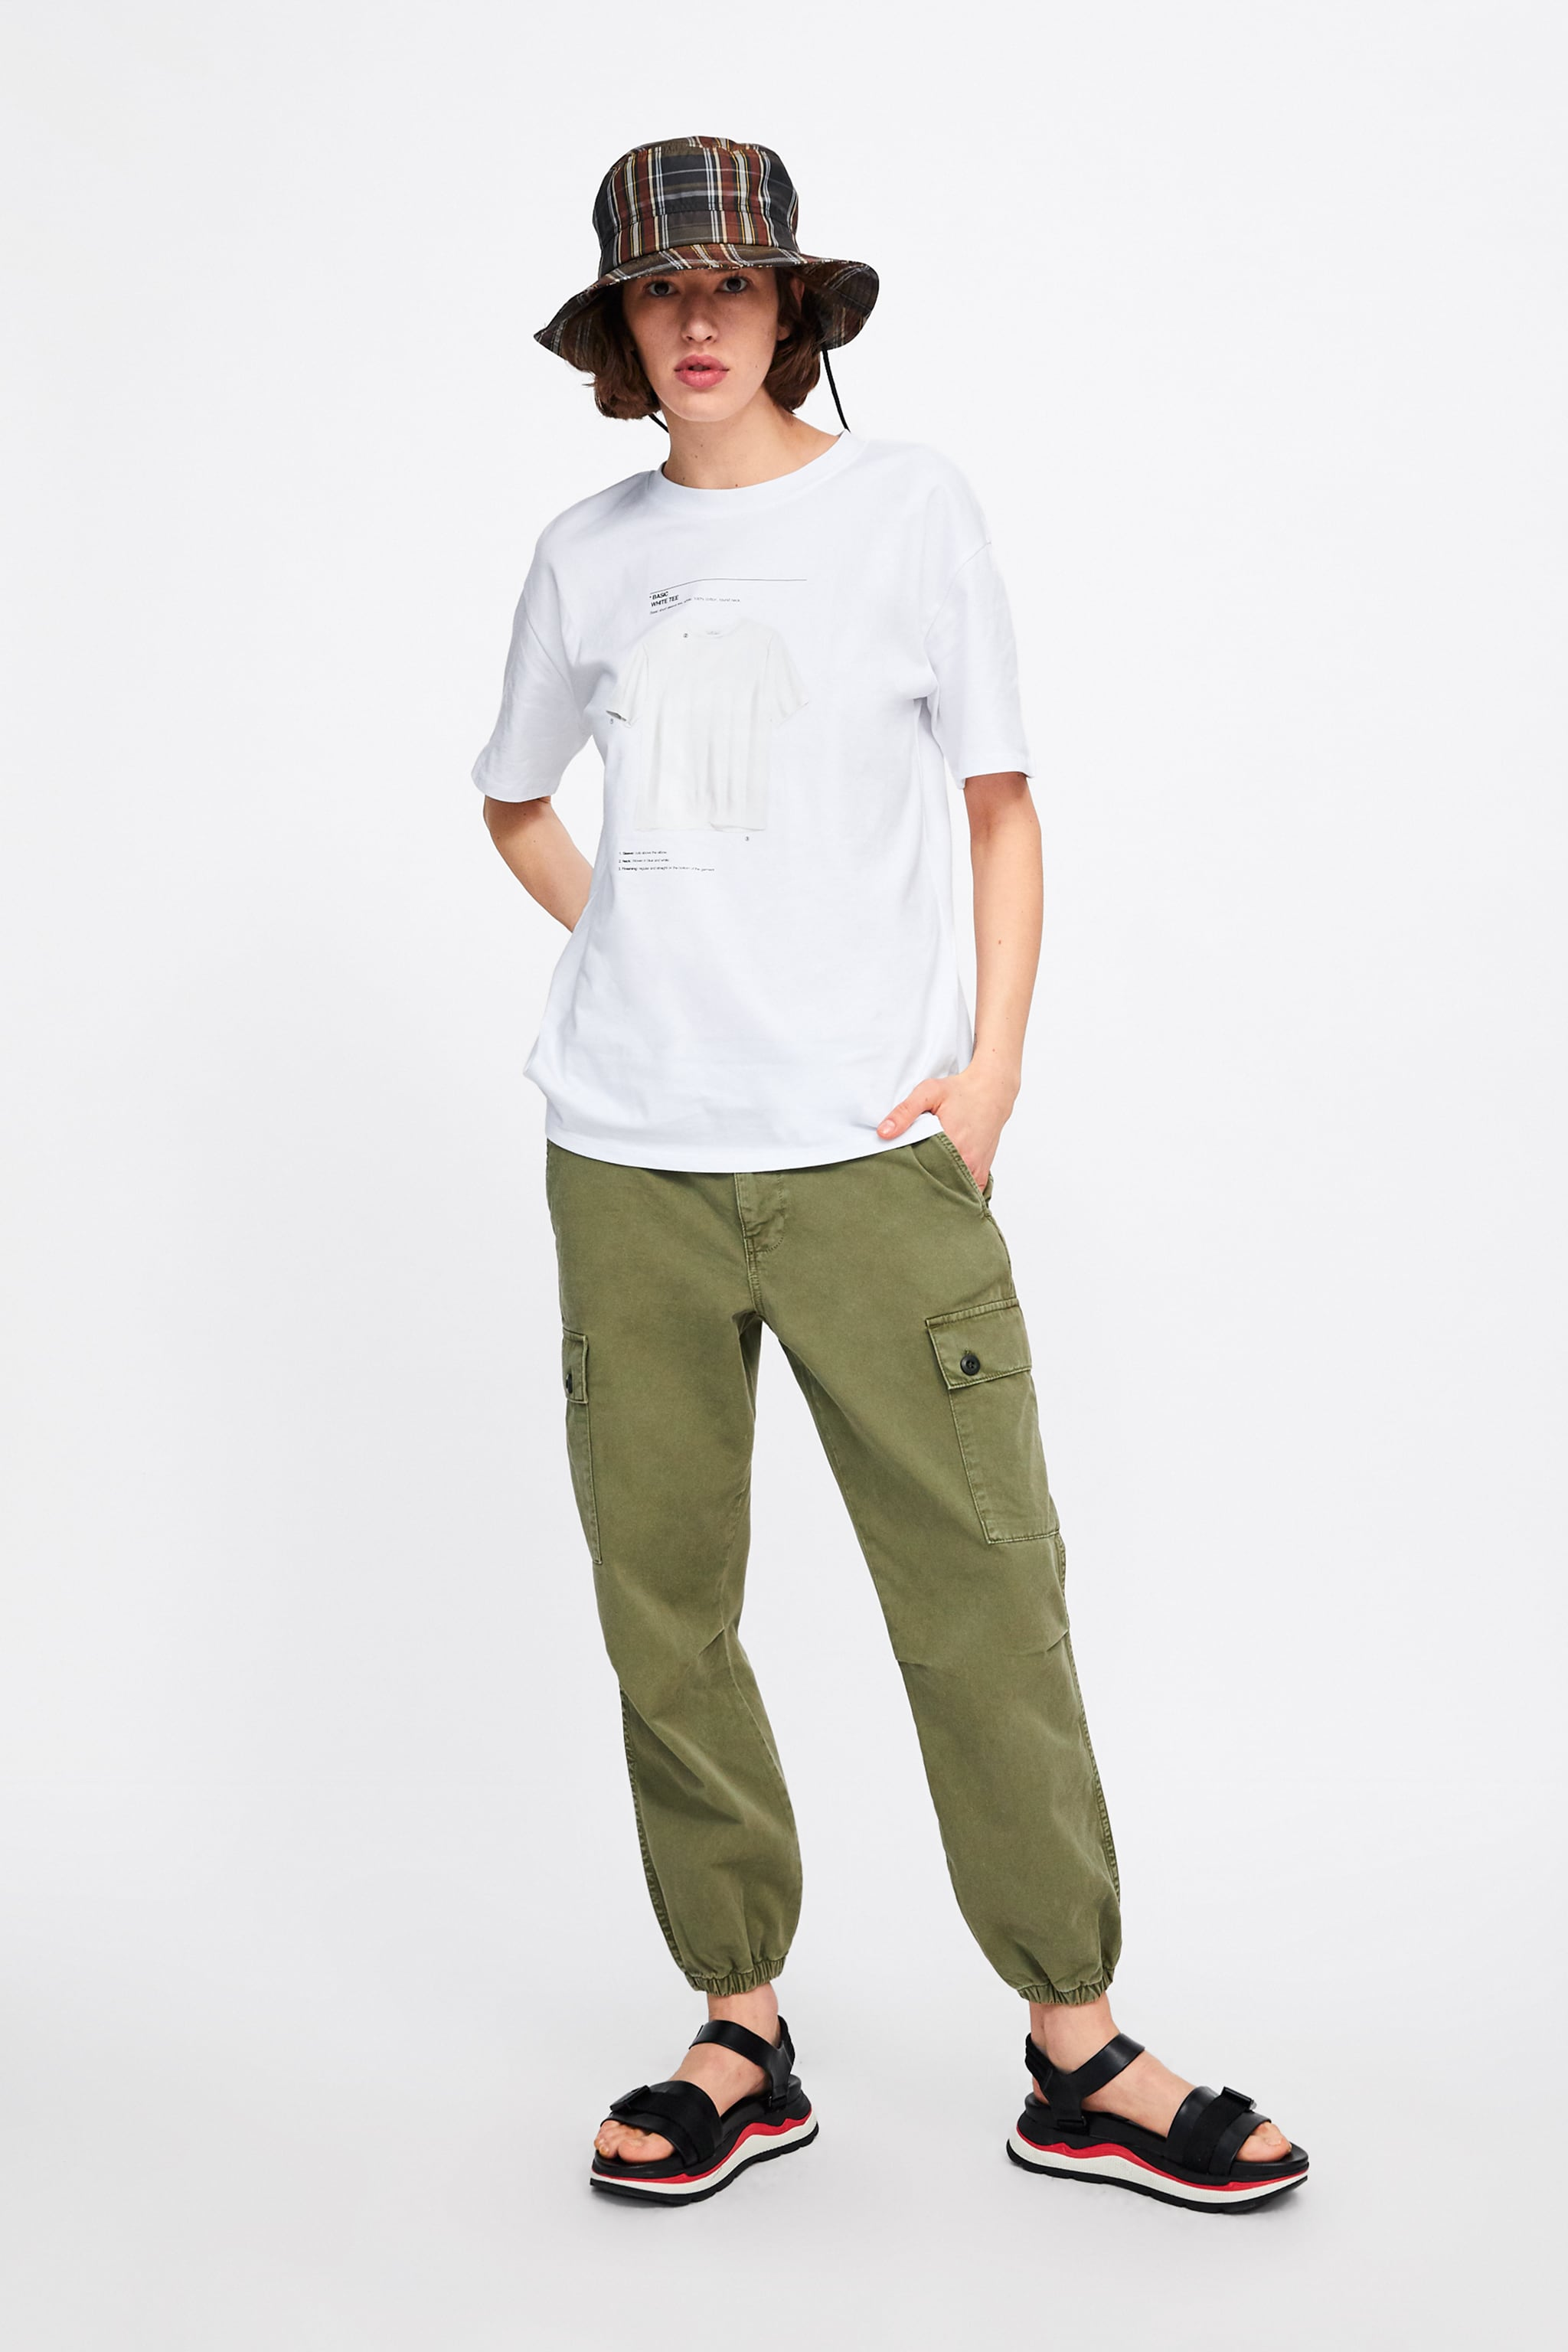 57486af5be6 Zara T-SHIRT WITH FRONT PRINT